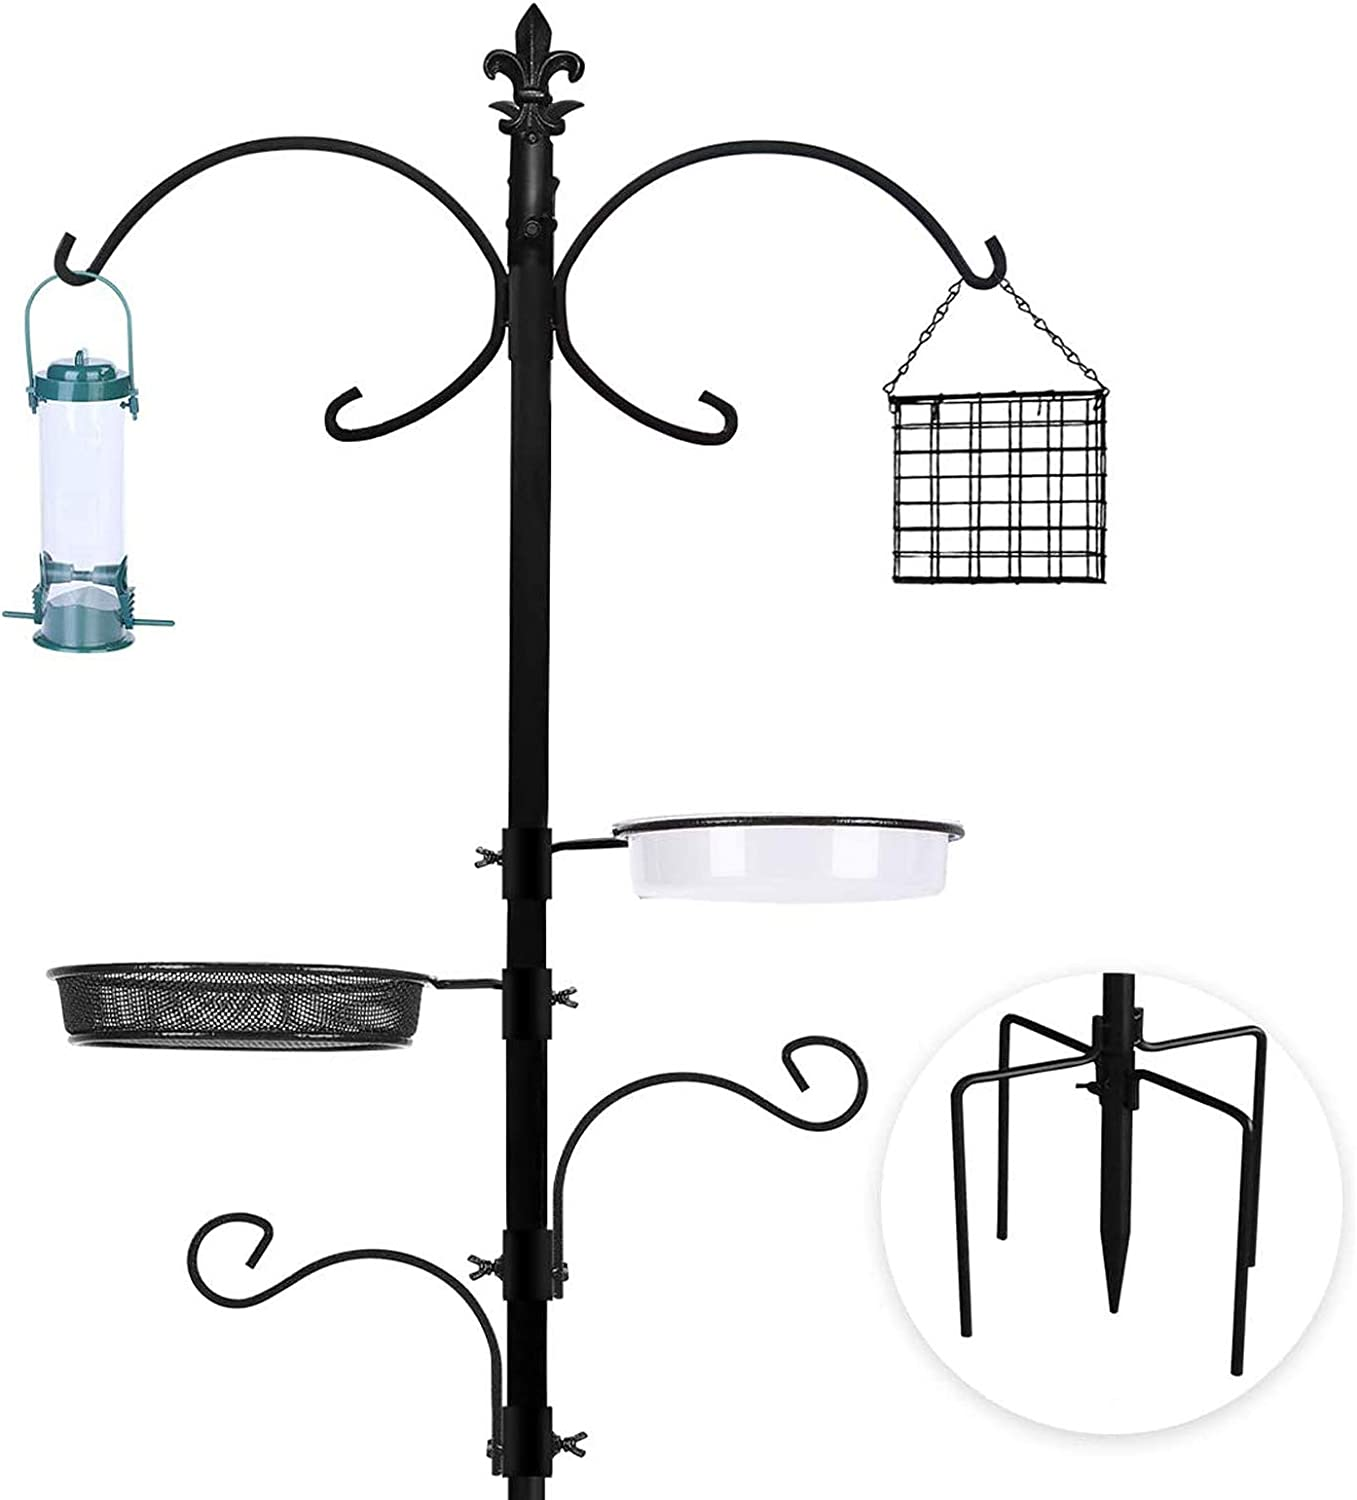 Bird Feeding Station Bird Feeders Poles Kit Multi Feeder Hanging Kit Premium Bird Bath for Attracting Wild Birds Birdfeeder & Planter Hanger (Bird Feeding Station)